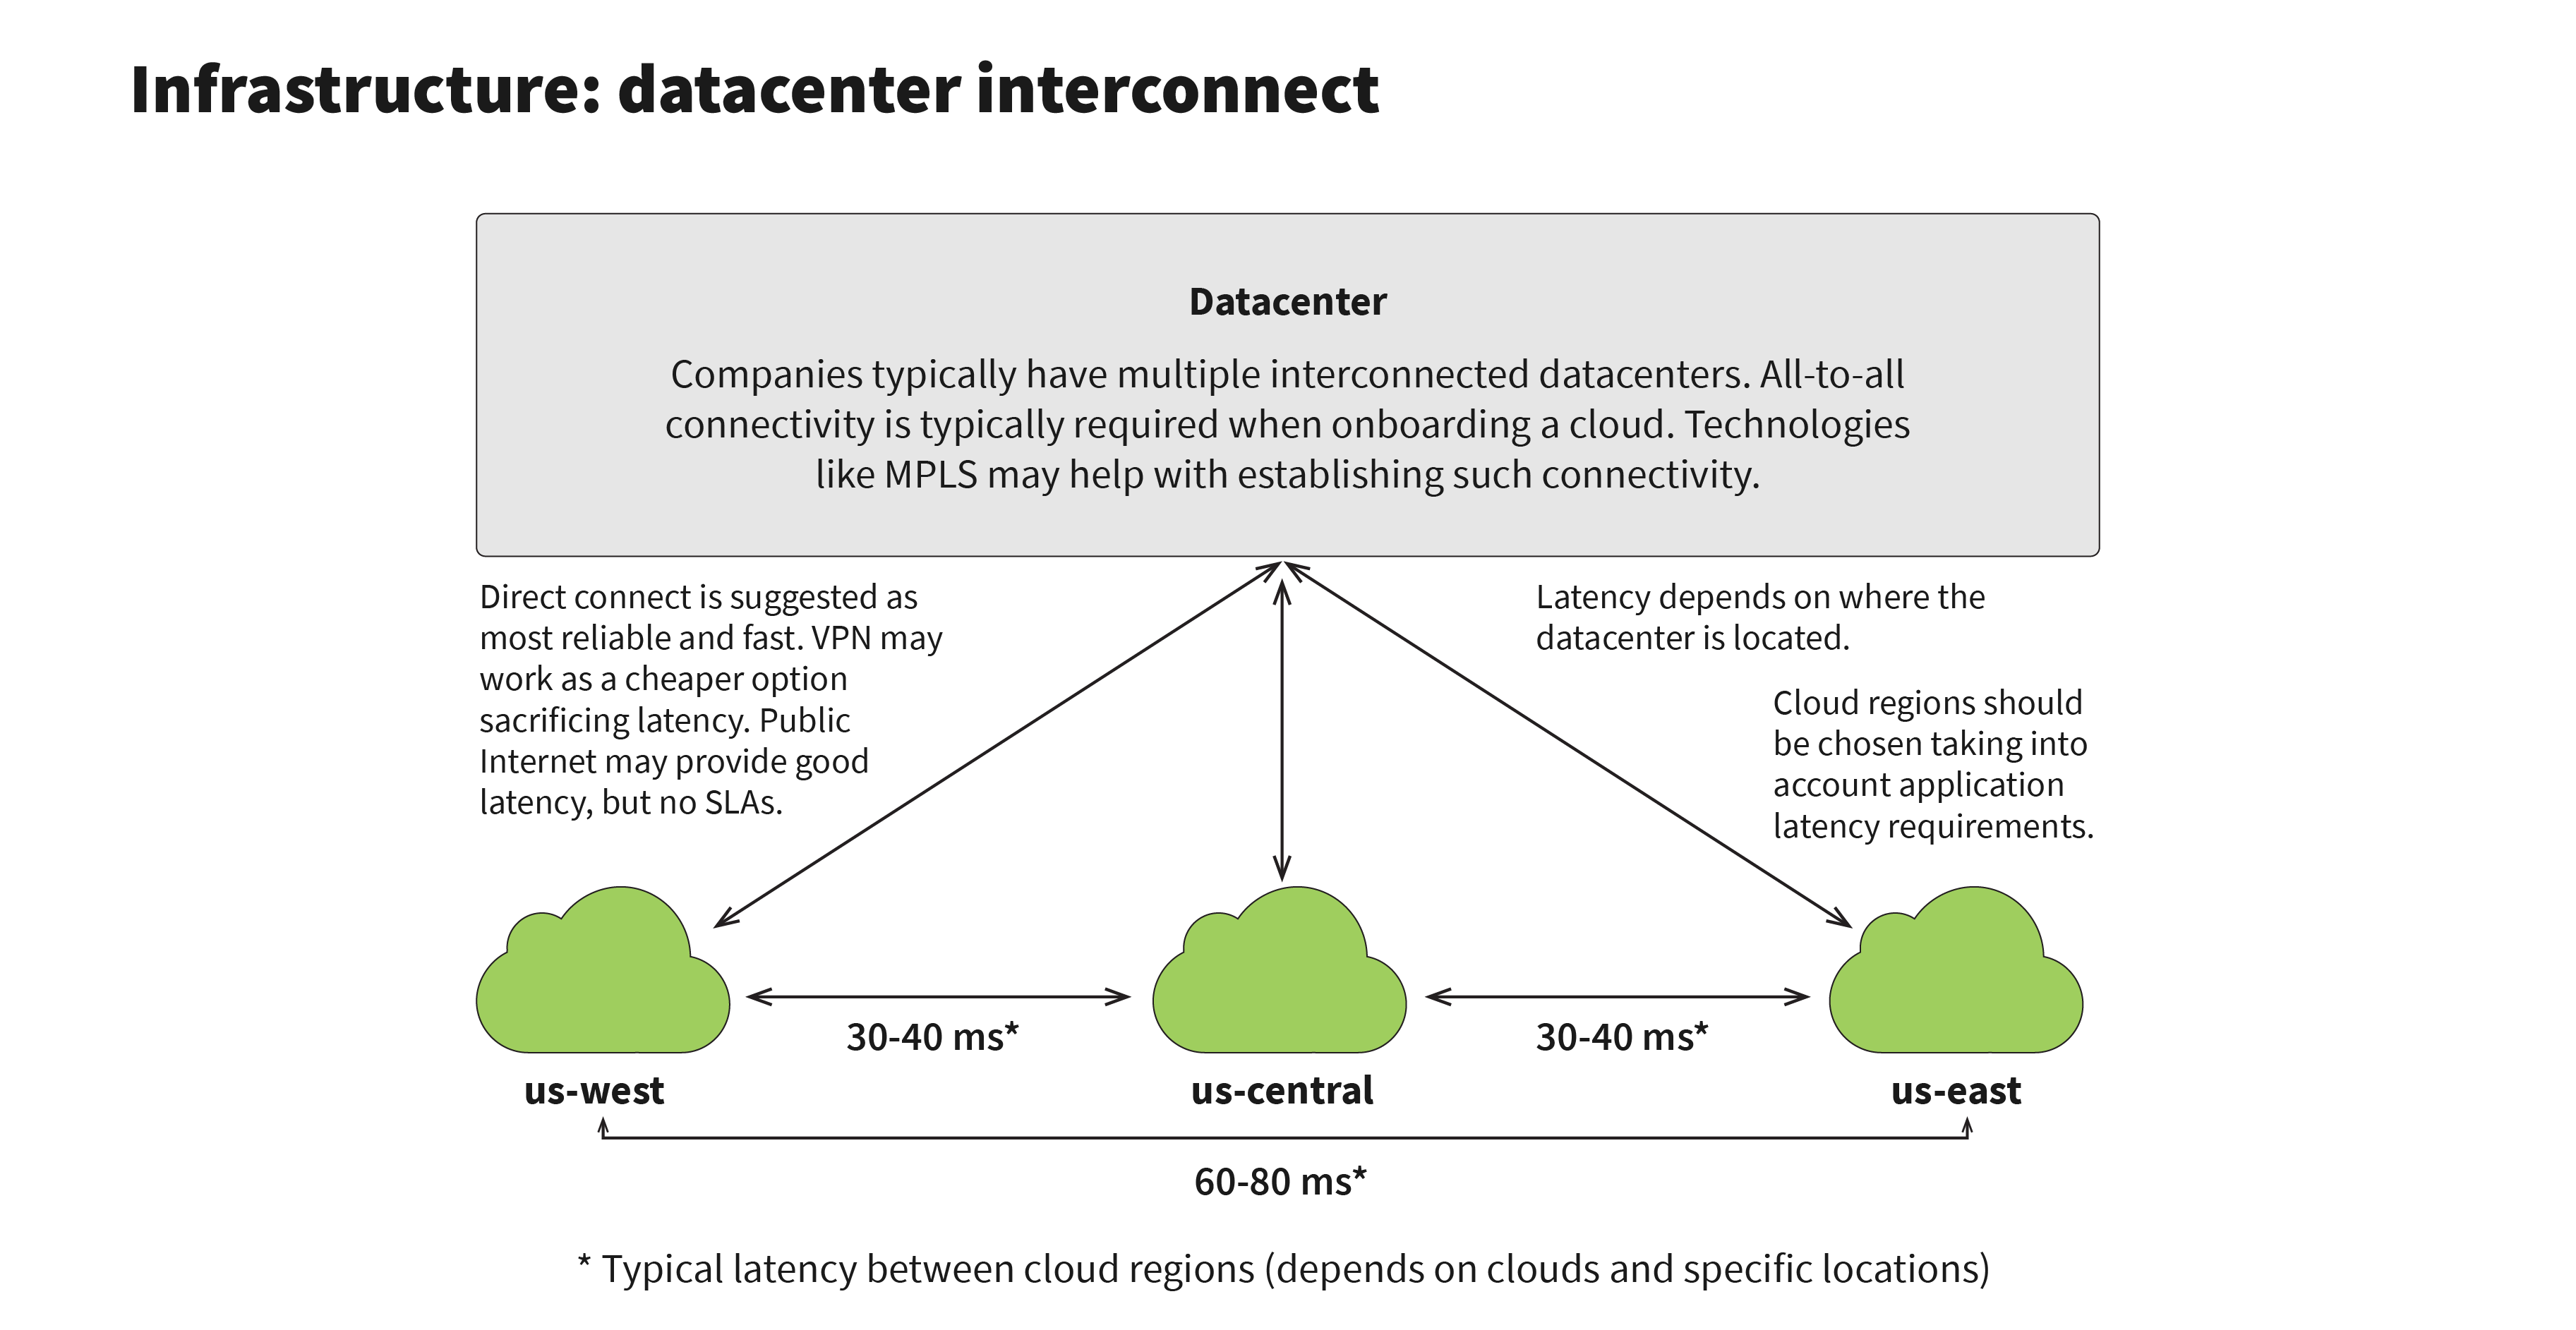 Infrastructure: datacenter interconnect